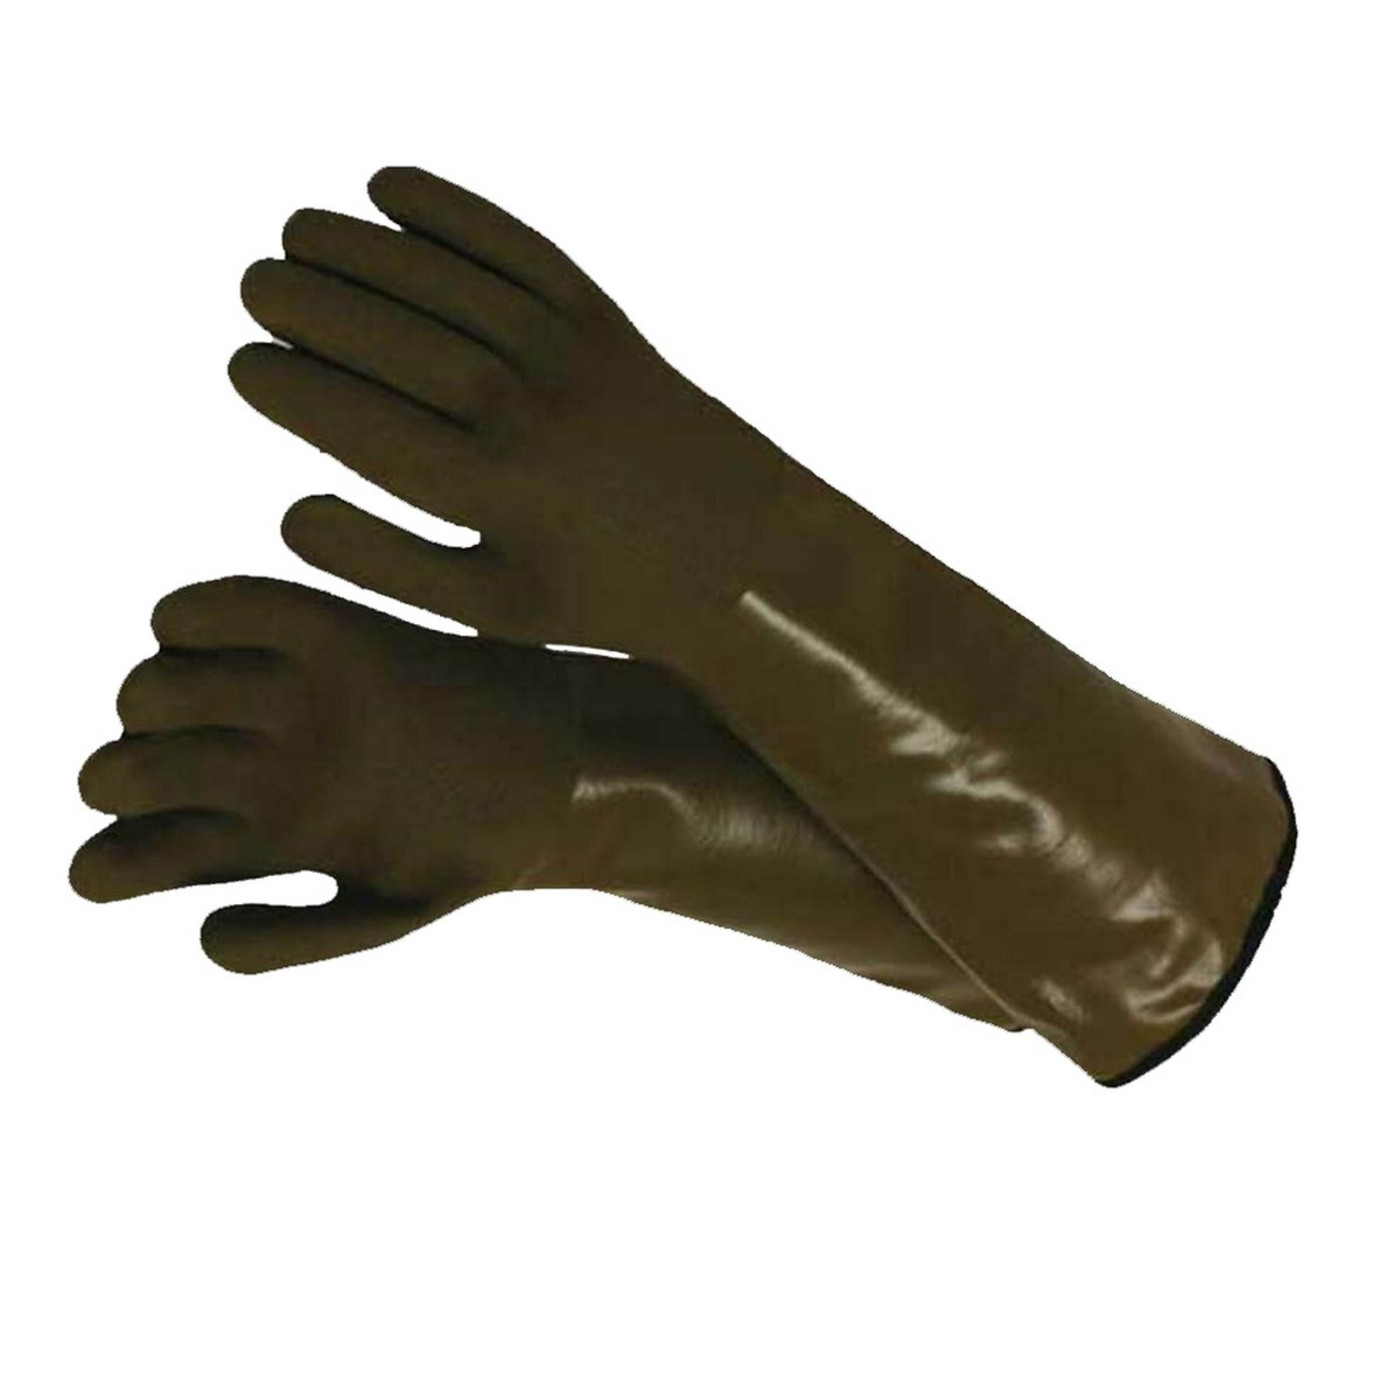 Midwest Glove PVC Coated Decoy Glove in Green Color